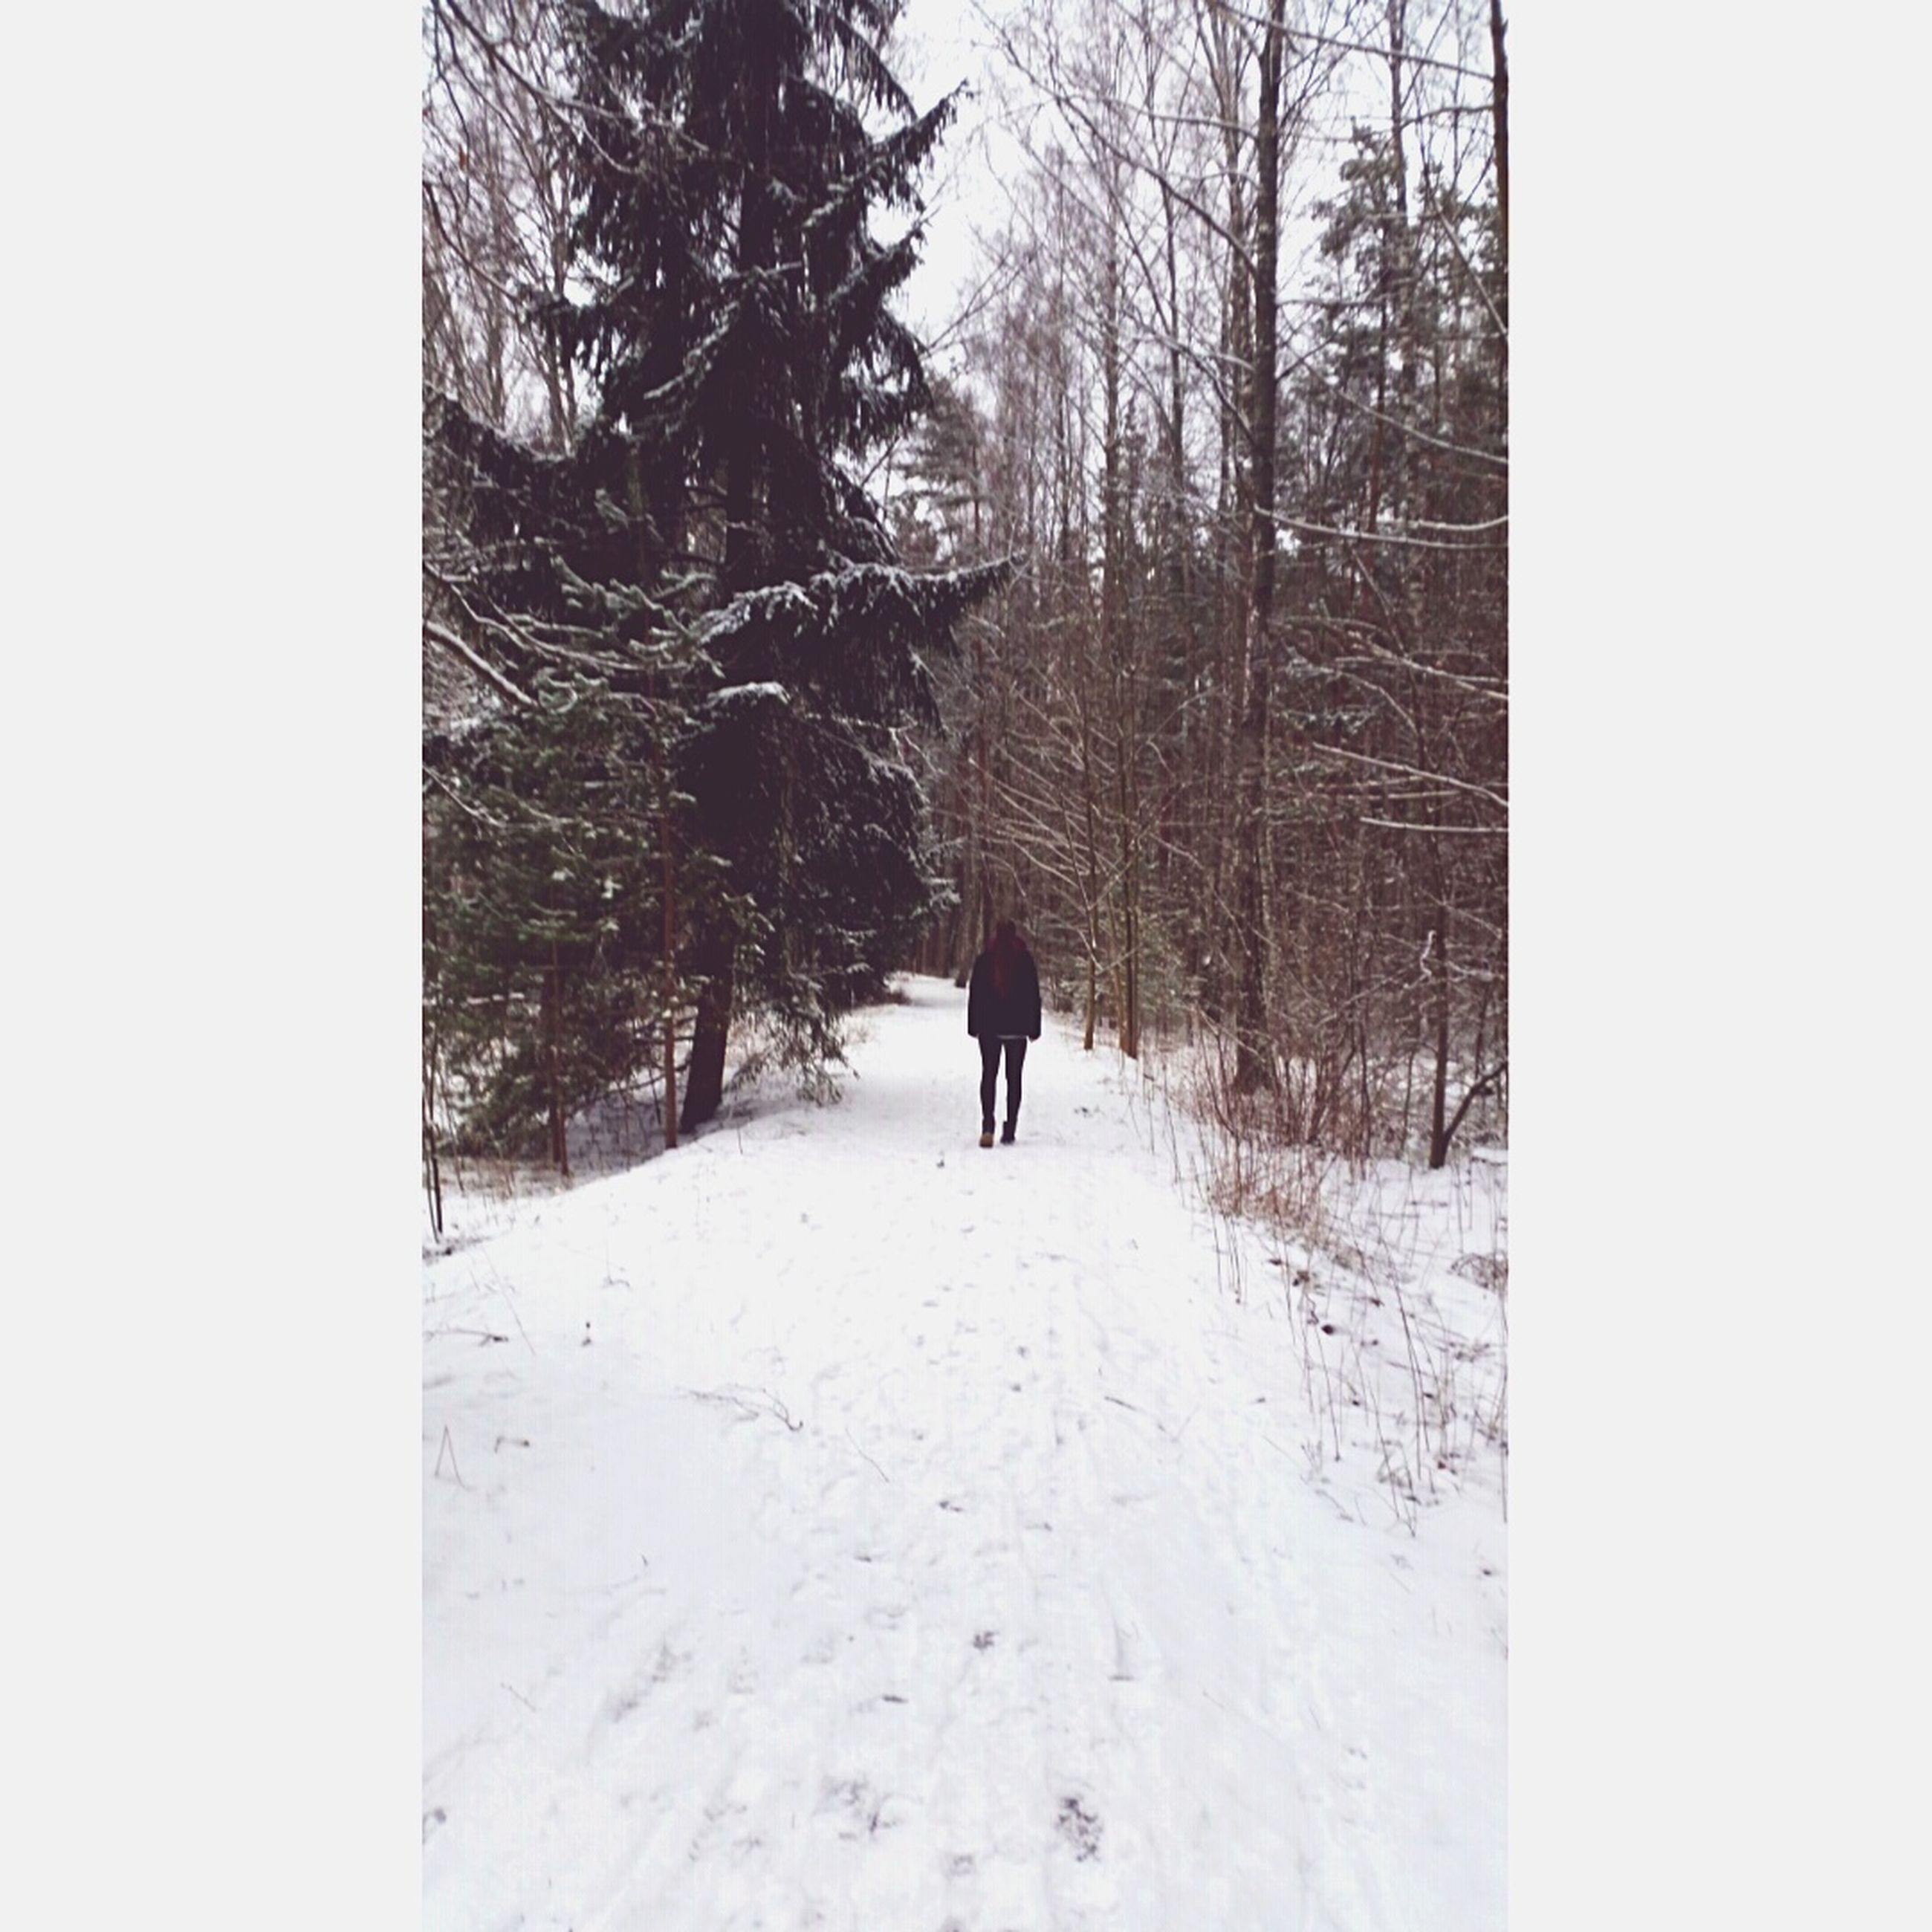 winter, snow, cold temperature, walking, season, the way forward, tree, weather, rear view, full length, bare tree, lifestyles, men, covering, unrecognizable person, nature, auto post production filter, leisure activity